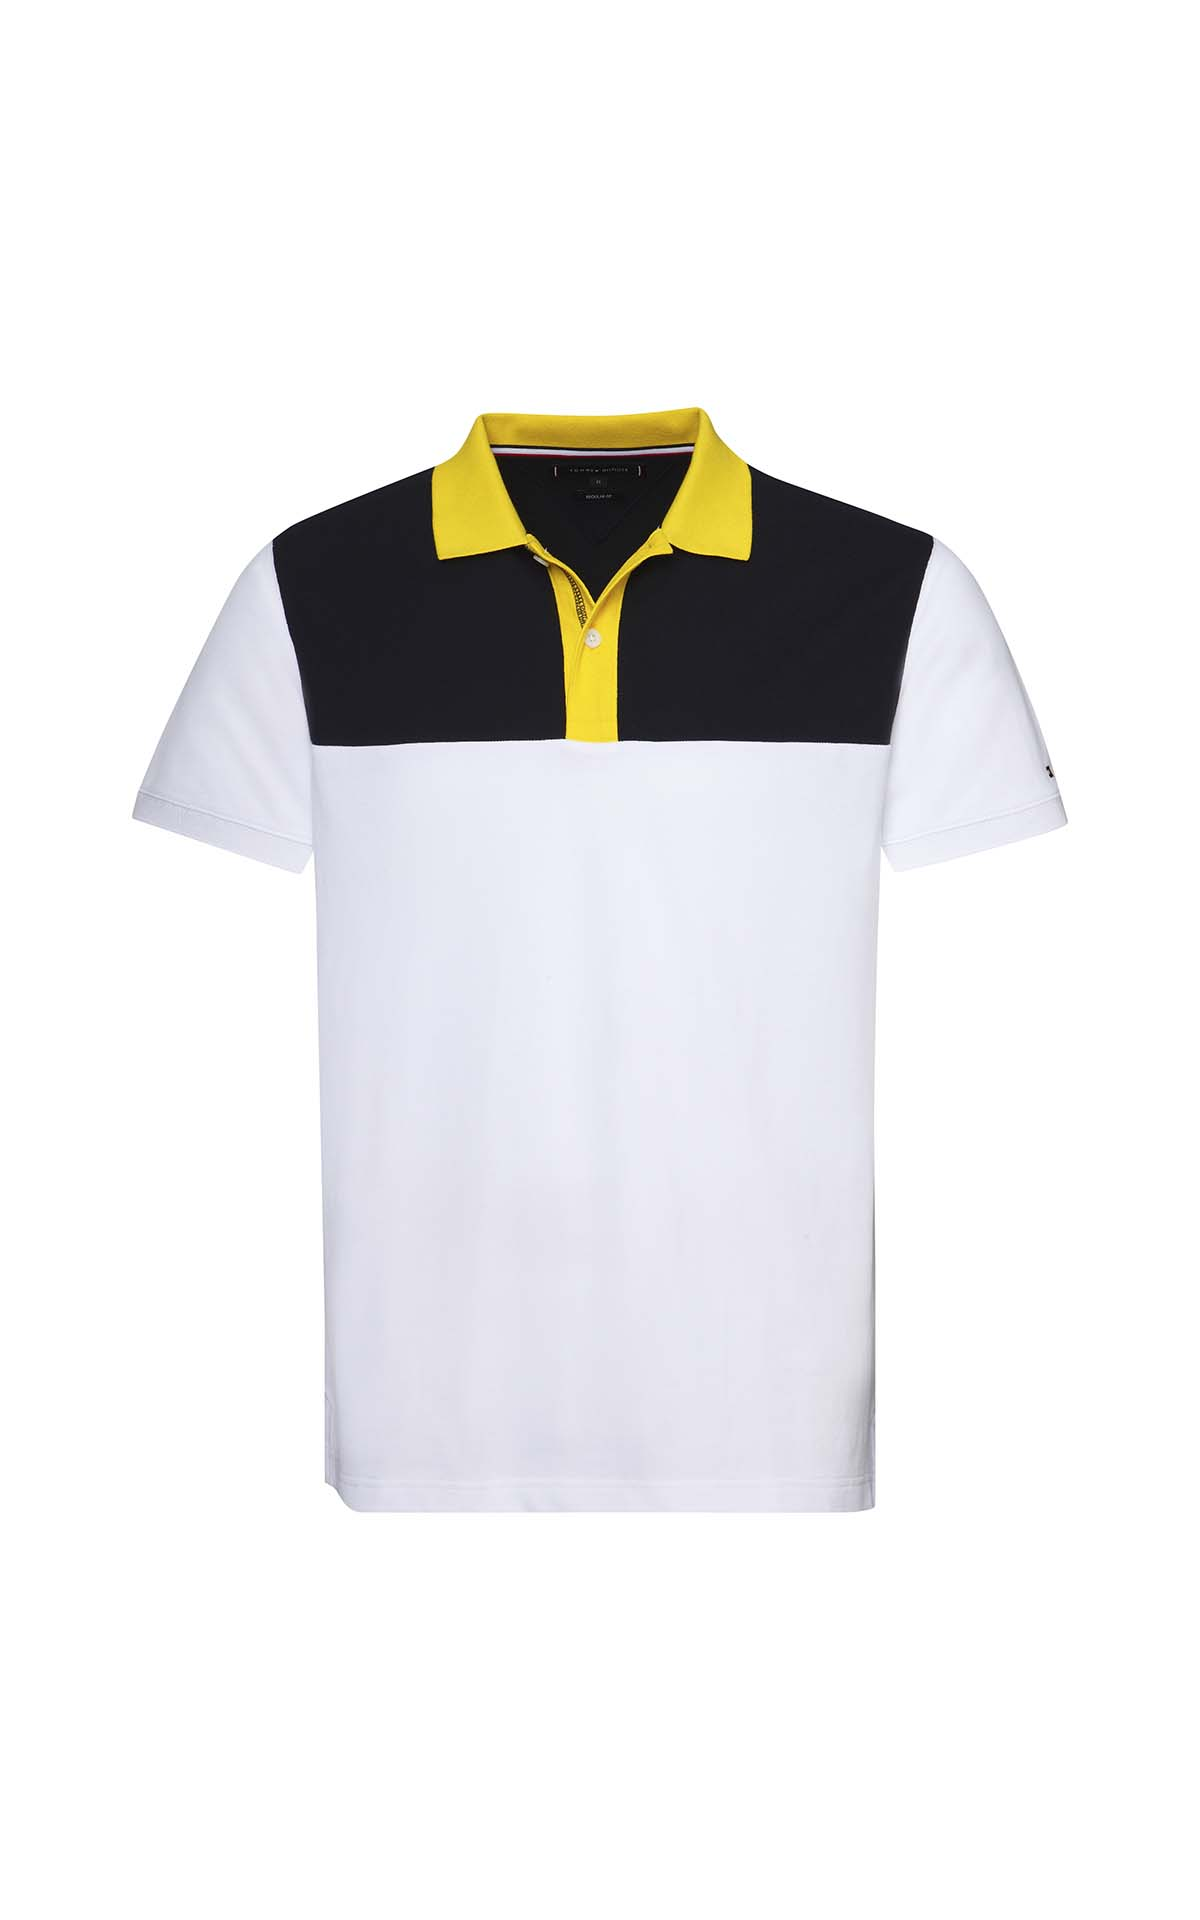 White and navy blue short sleeves polo shirt for man Tommy Hilfiger